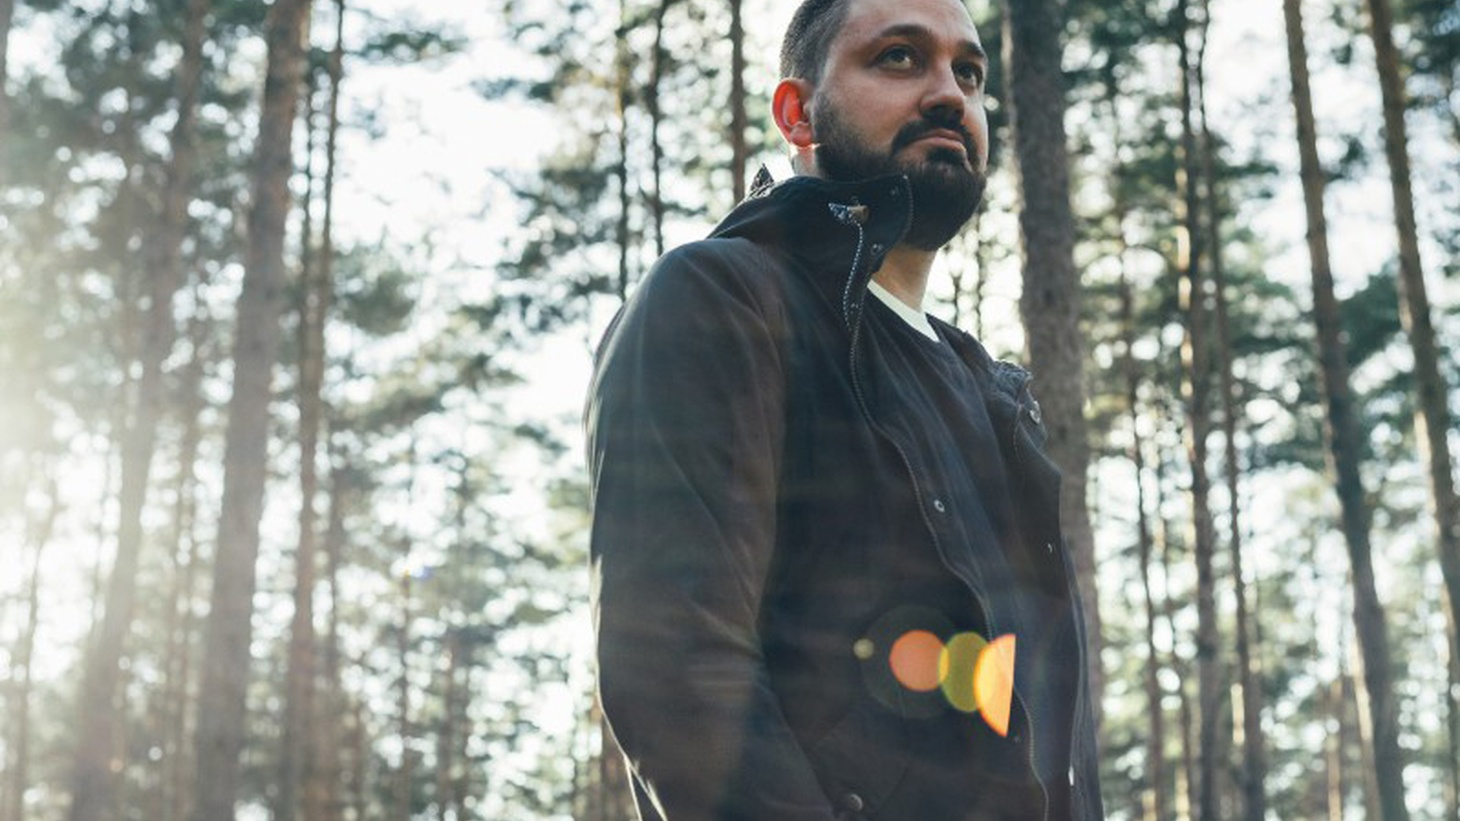 German producer Fritz Kalkbrenner comes from a club music tradition, but on his third album he demonstrates that his talents cannot be limited by genre.